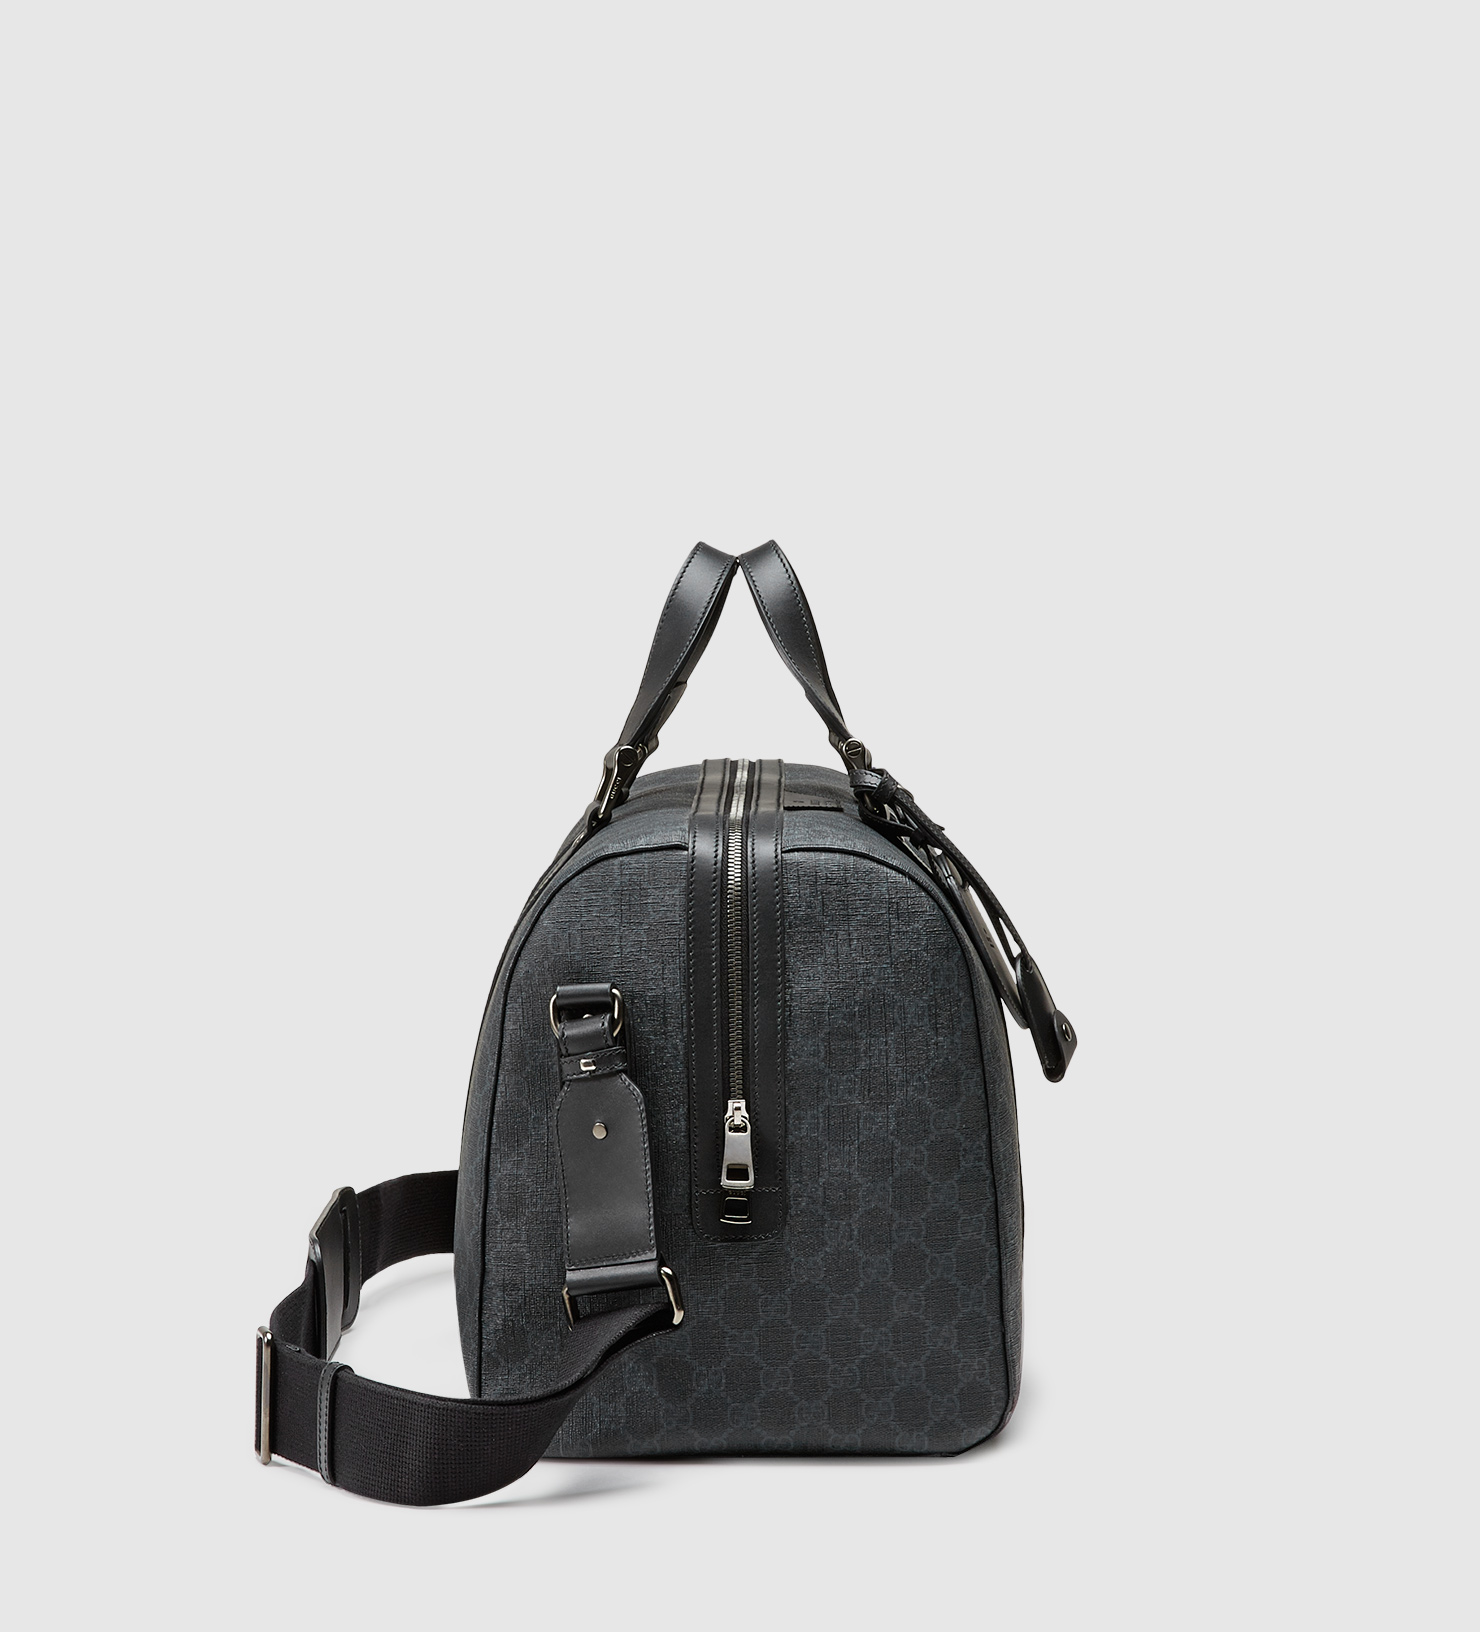 8fcb973d36c1 Gucci Gg Supreme Canvas Carry-on Duffle Bag in Black for Men - Lyst